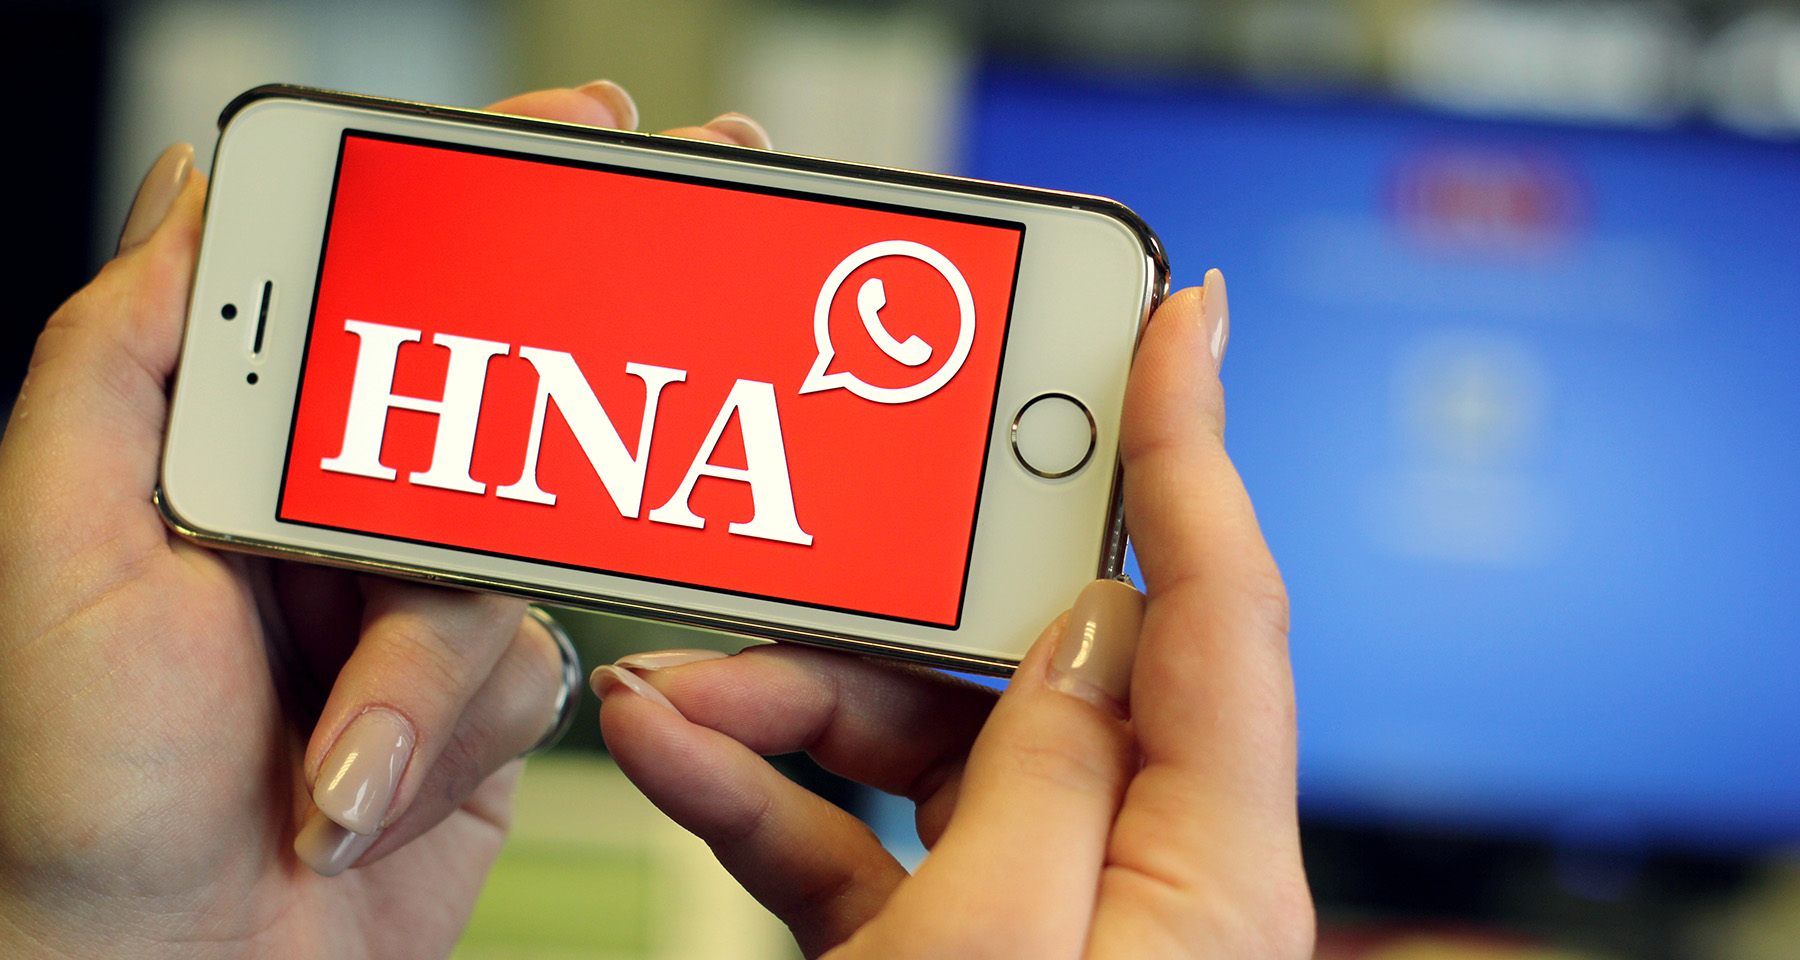 HNA reaches younger, non-subscriber audience via WhatsApp